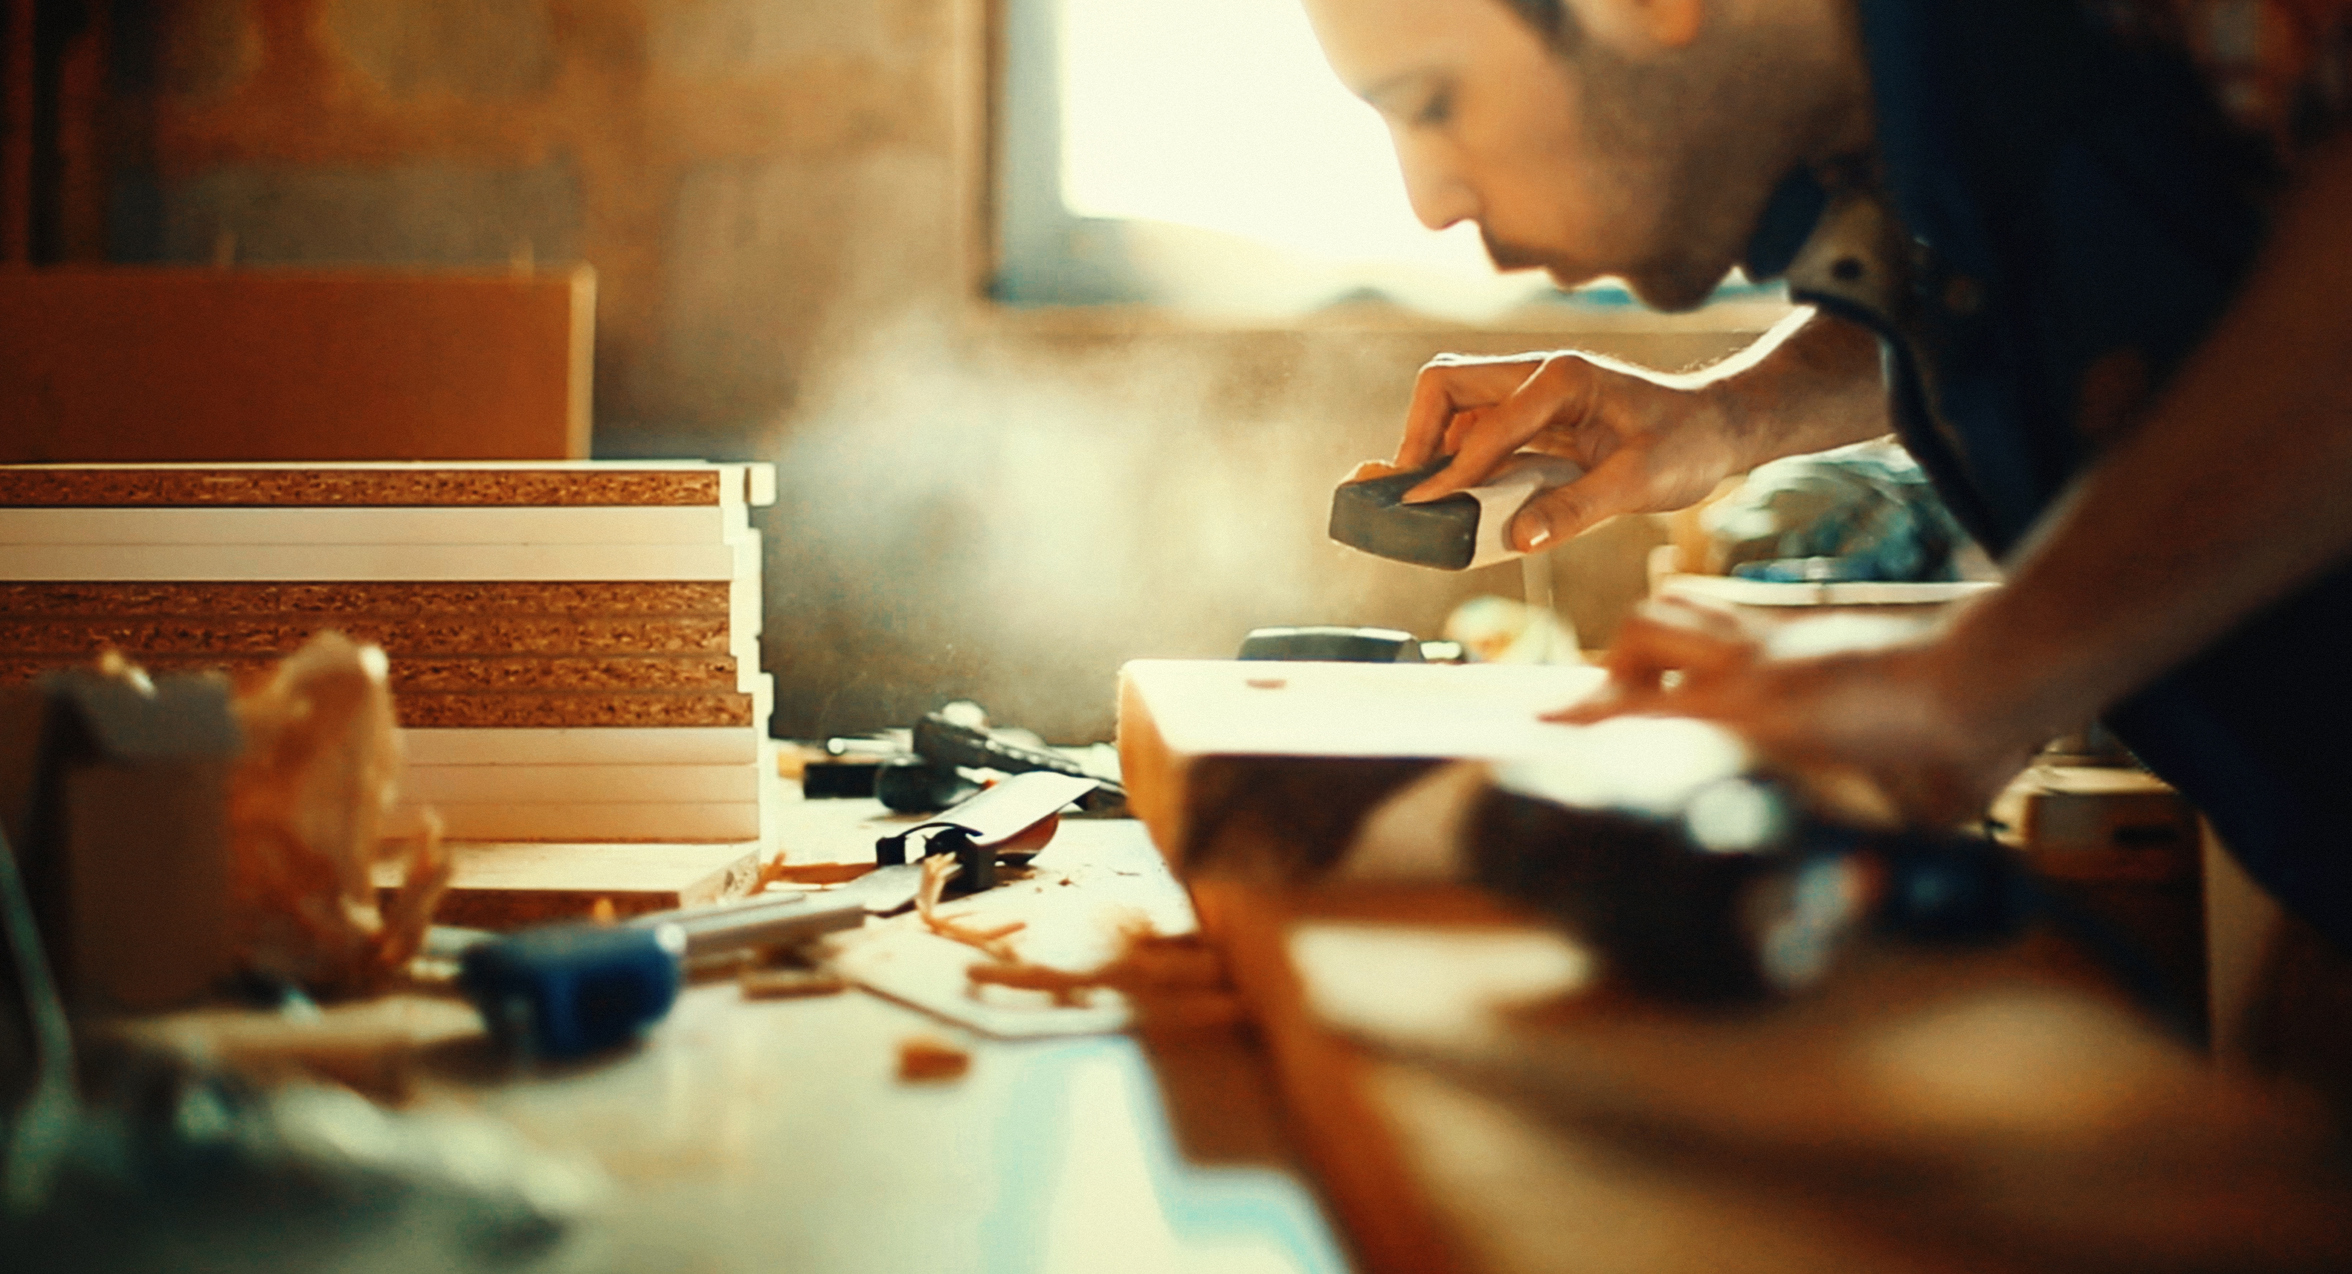 Staying Home Offers An Opportunity to Renew Old Skills...and Learn New Ones